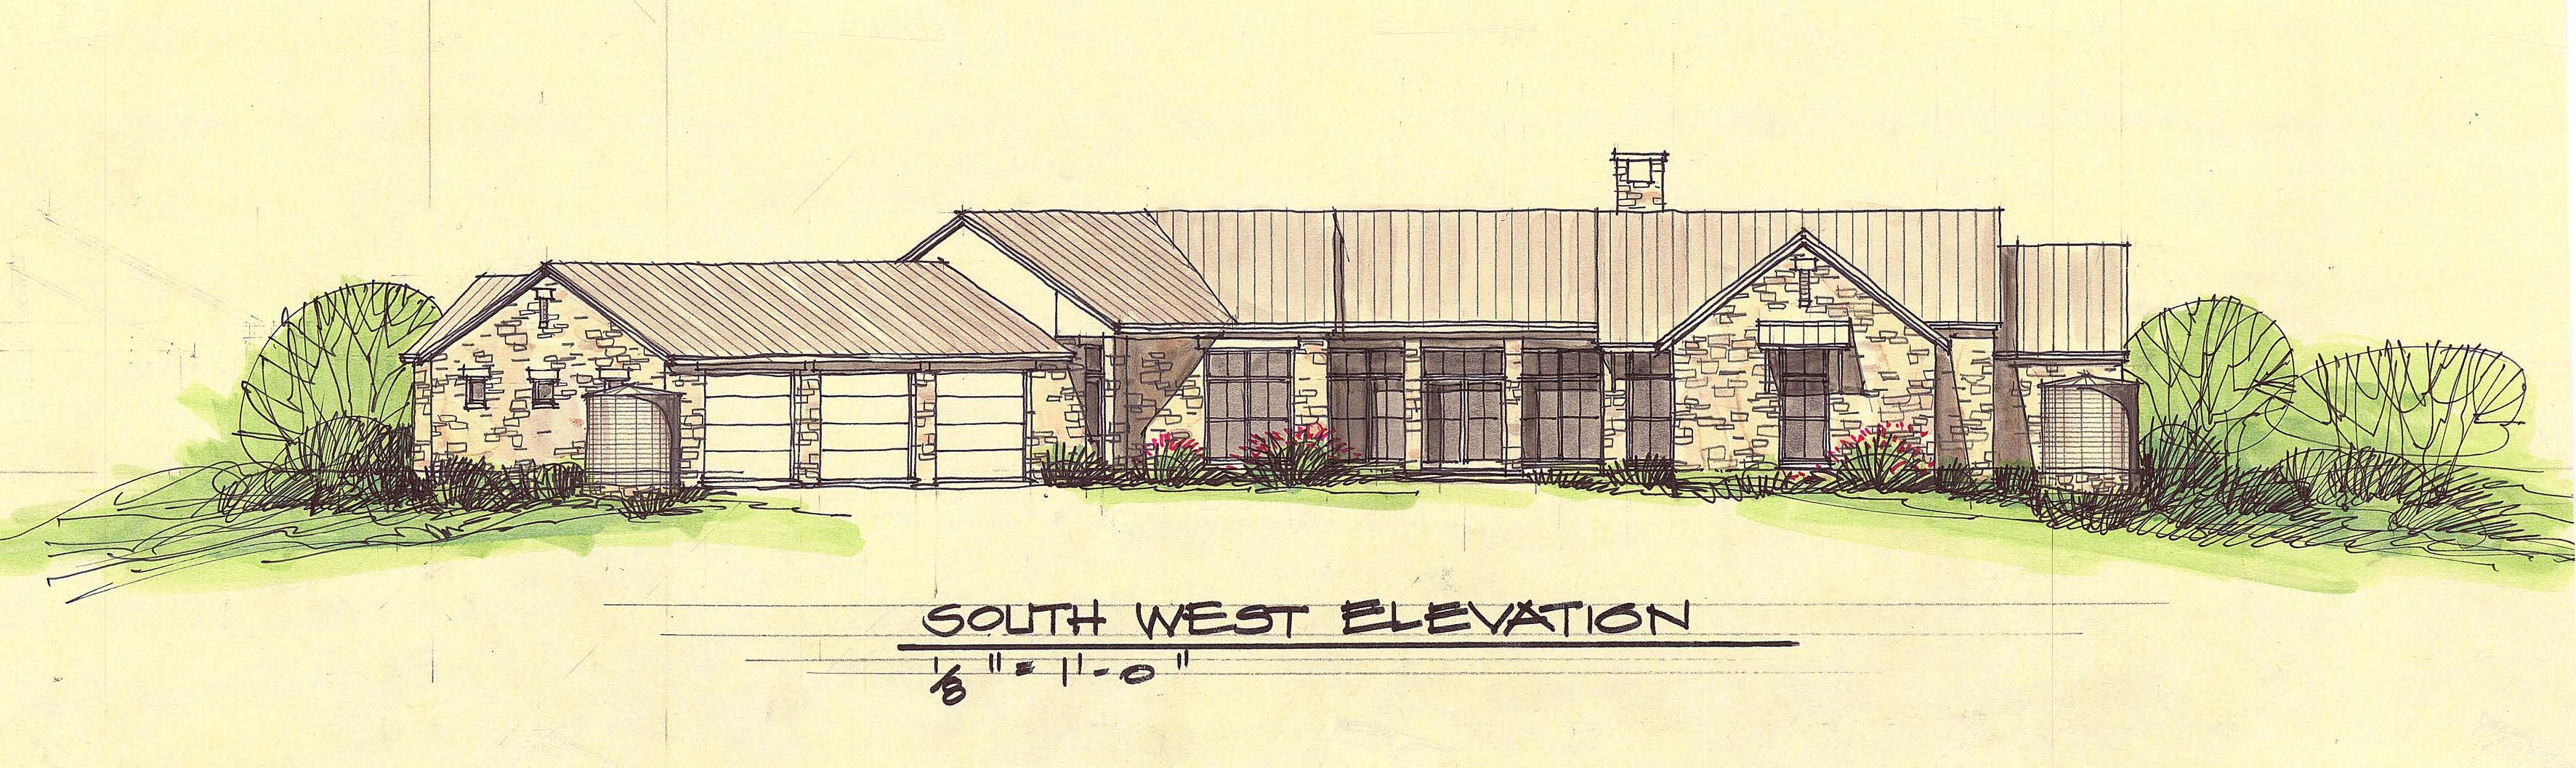 Southwest Elevation